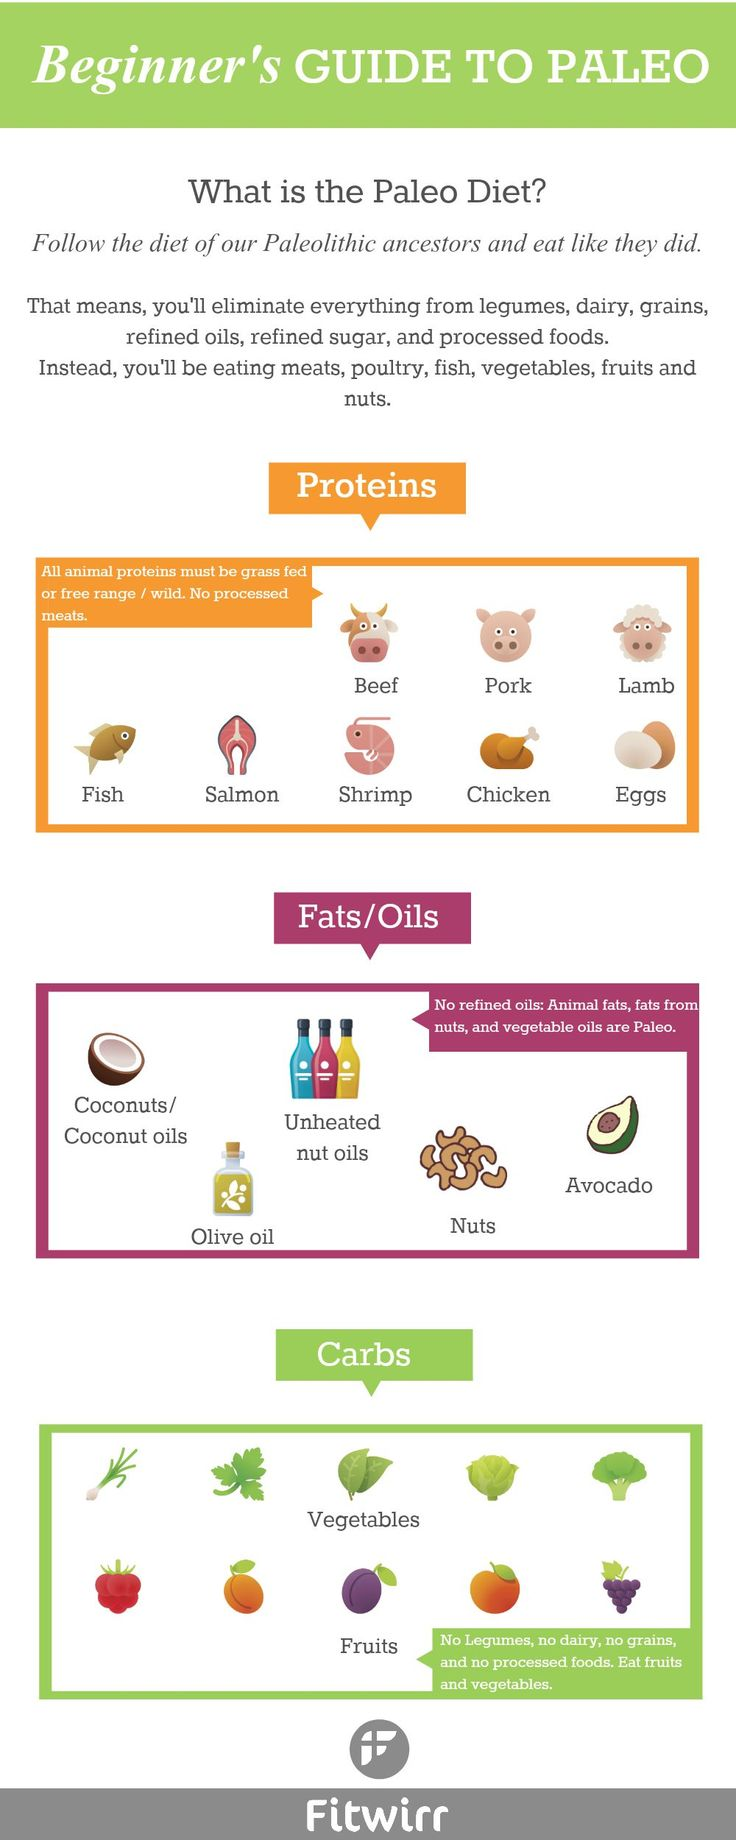 Paleo was the most searched diet on google in 2013 with strong celebrity backing from Jessica Biel, Miley Cyrus to Rick Ross who credited his extreme weight loss of 100 pounds to the Paleo diet and CrossFit Workout. What gets the Paleo diet raving fans?- what is this meat-eating diet really about and what's the theory behind it?